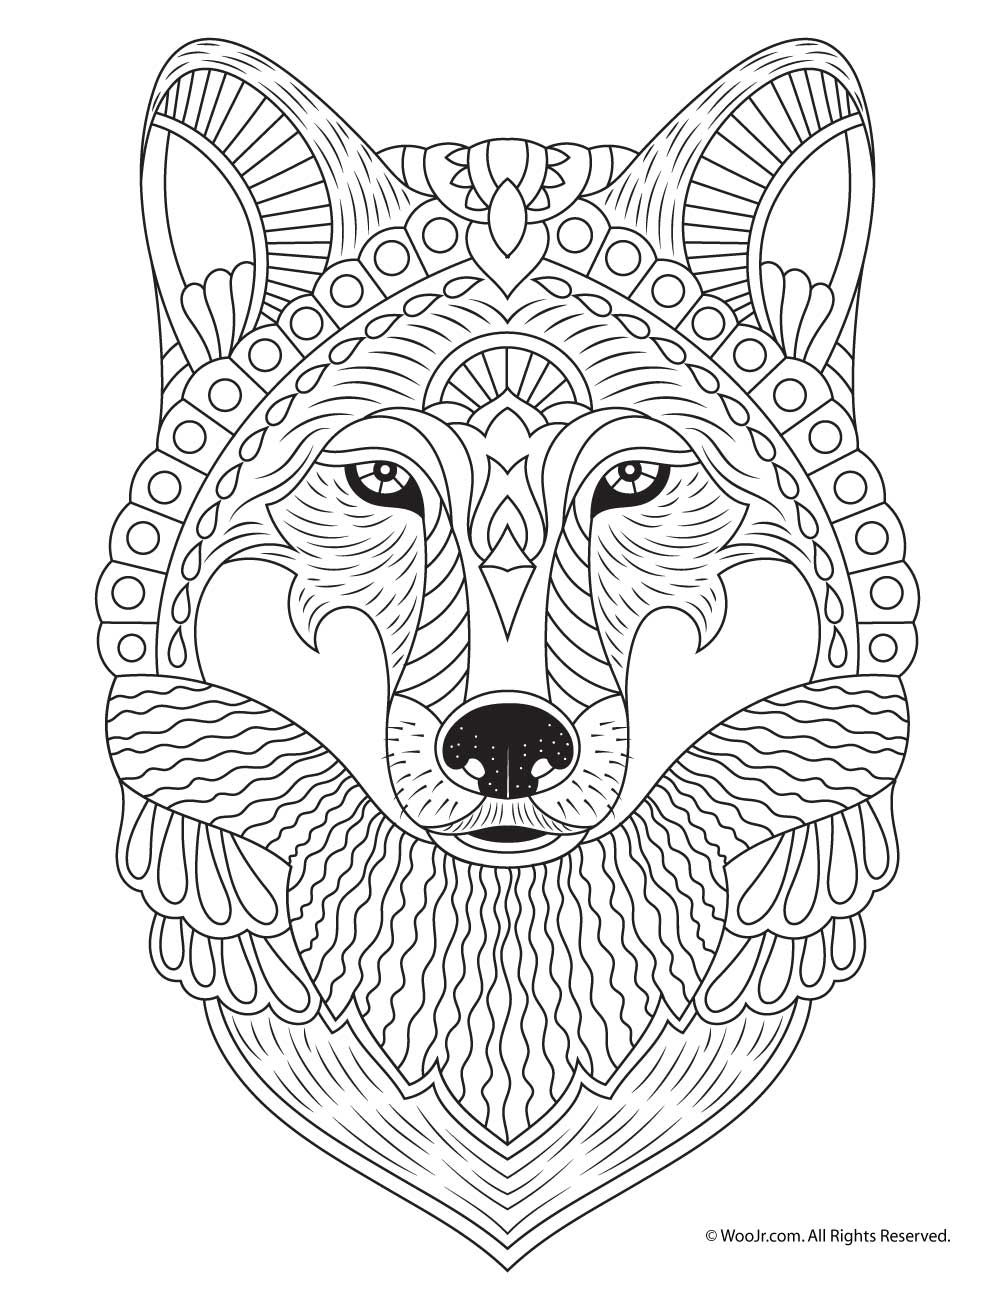 wolf coloring pages for adults best 23 wolf adult coloring pages home diy projects coloring adults wolf for pages